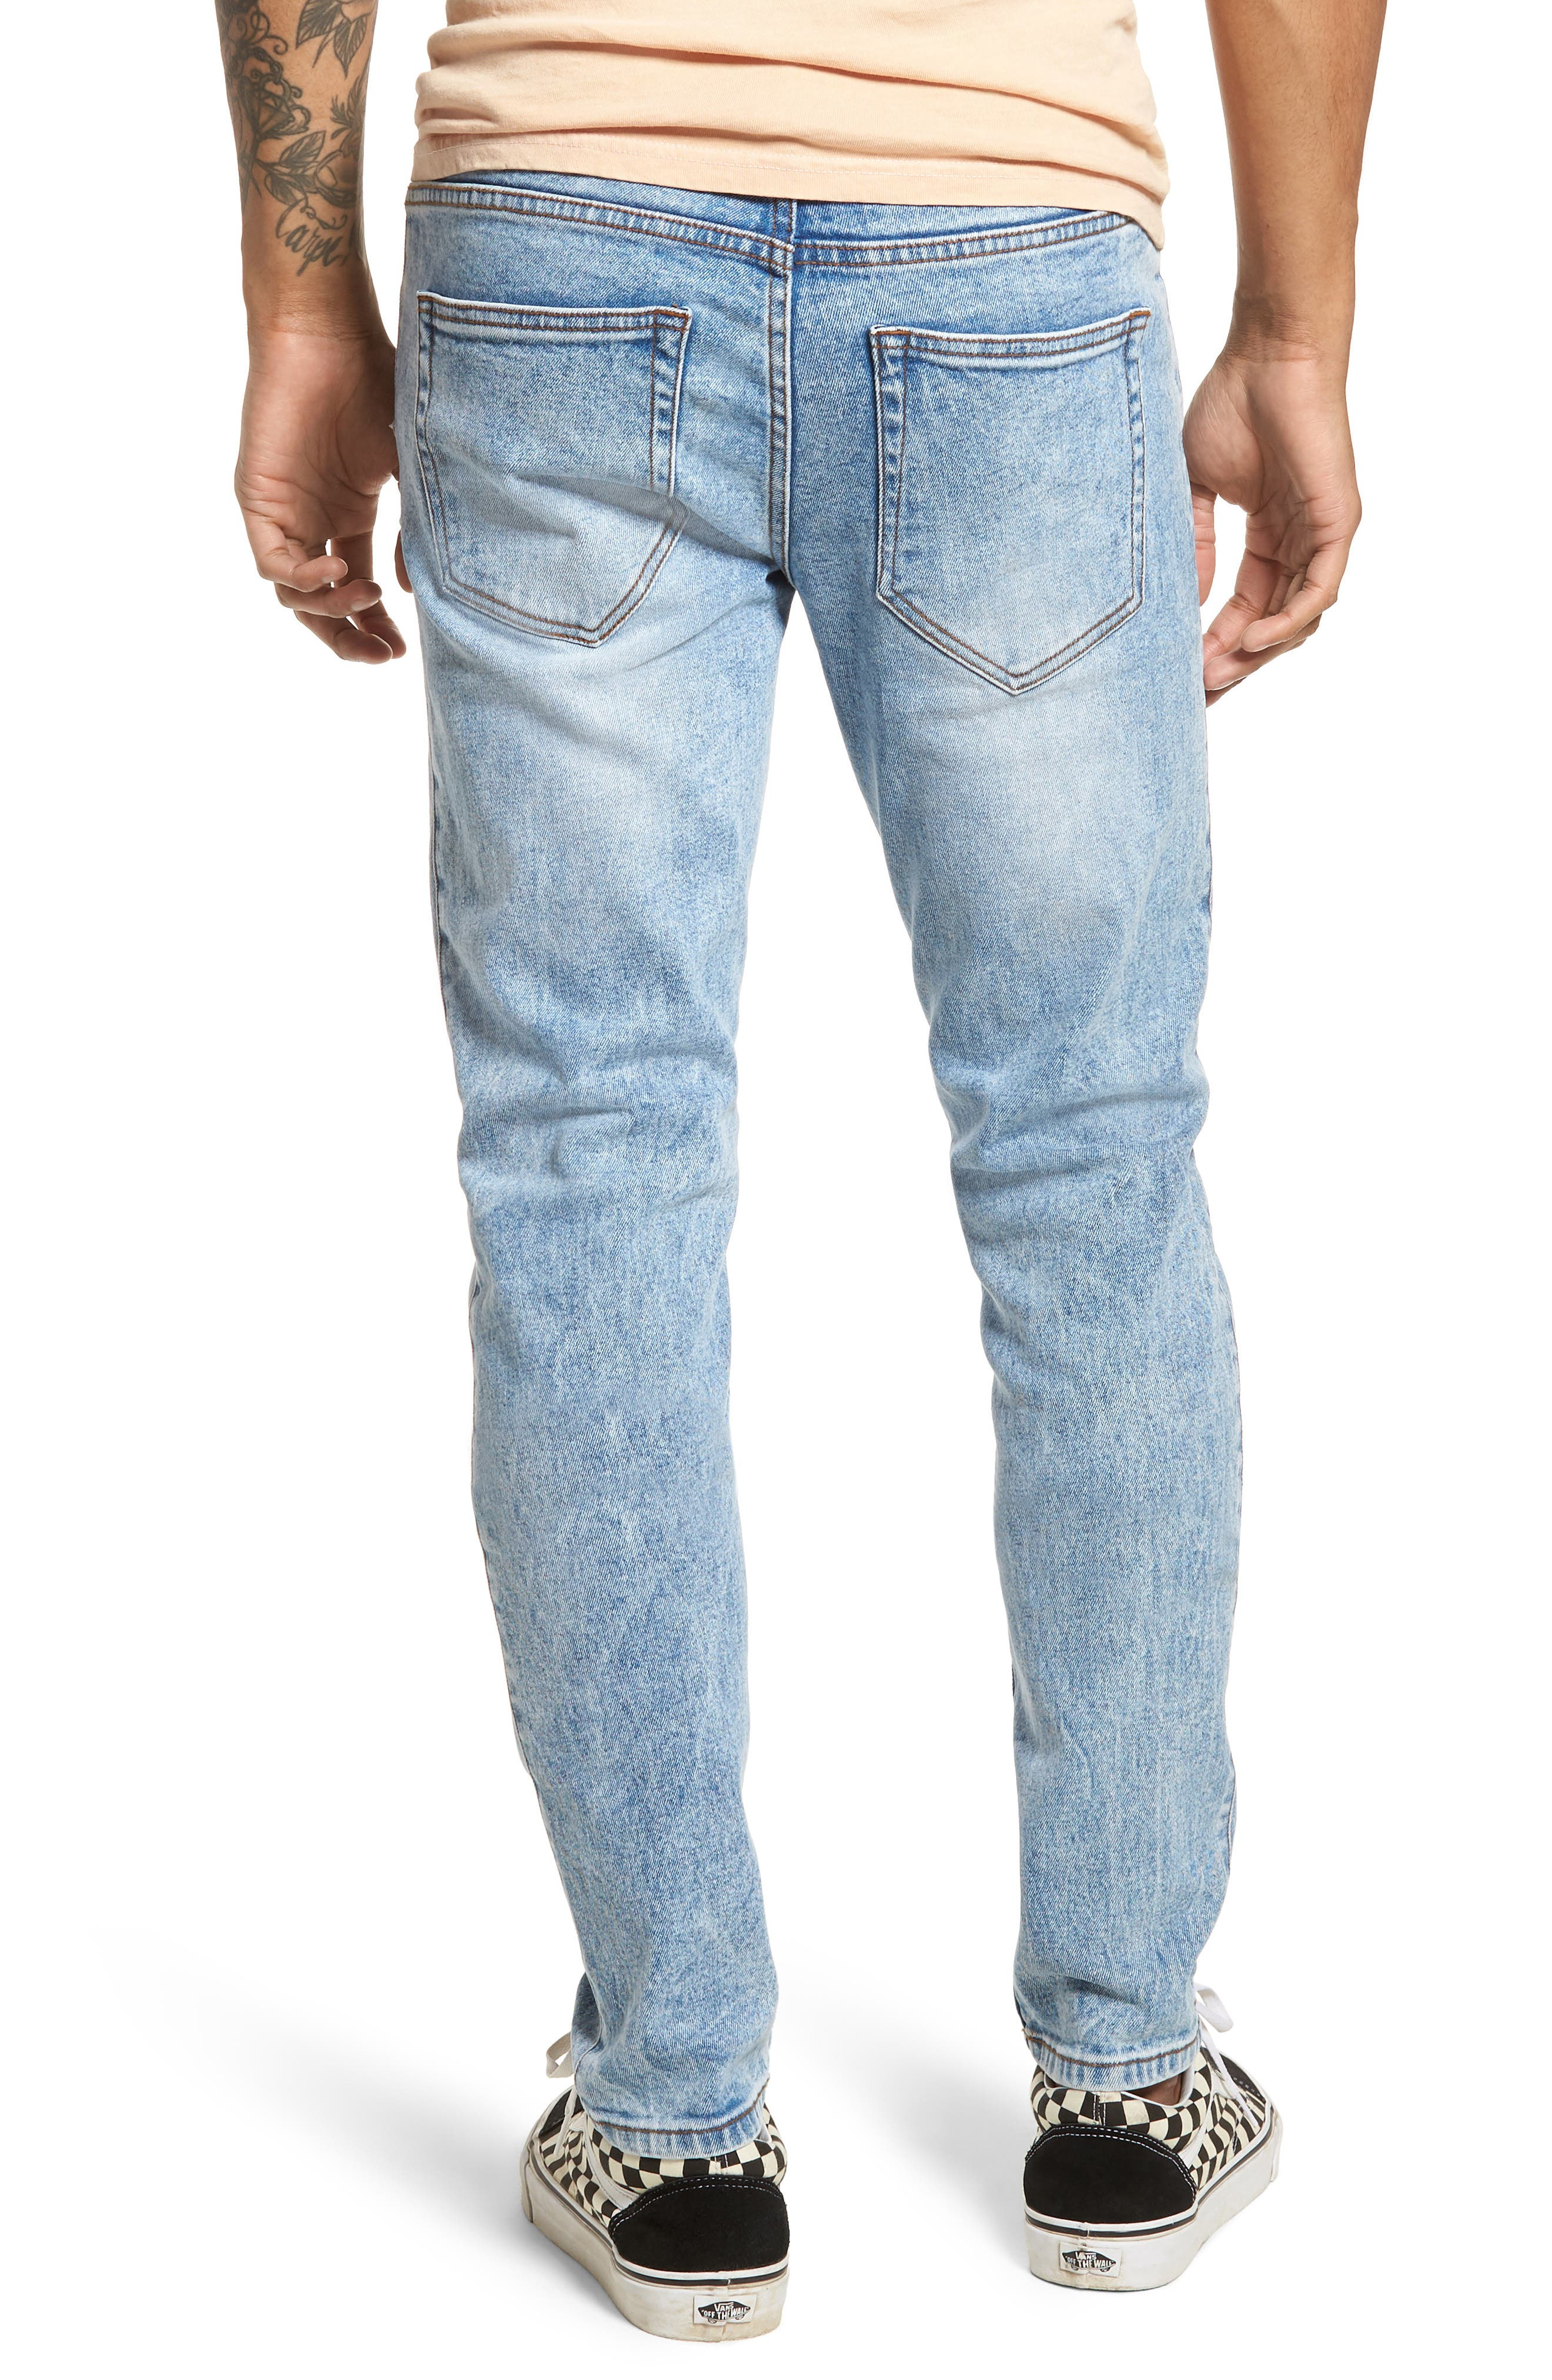 Clark Slim Straight Leg Jeans,                             Alternate thumbnail 2, color,                             Foggy Blue